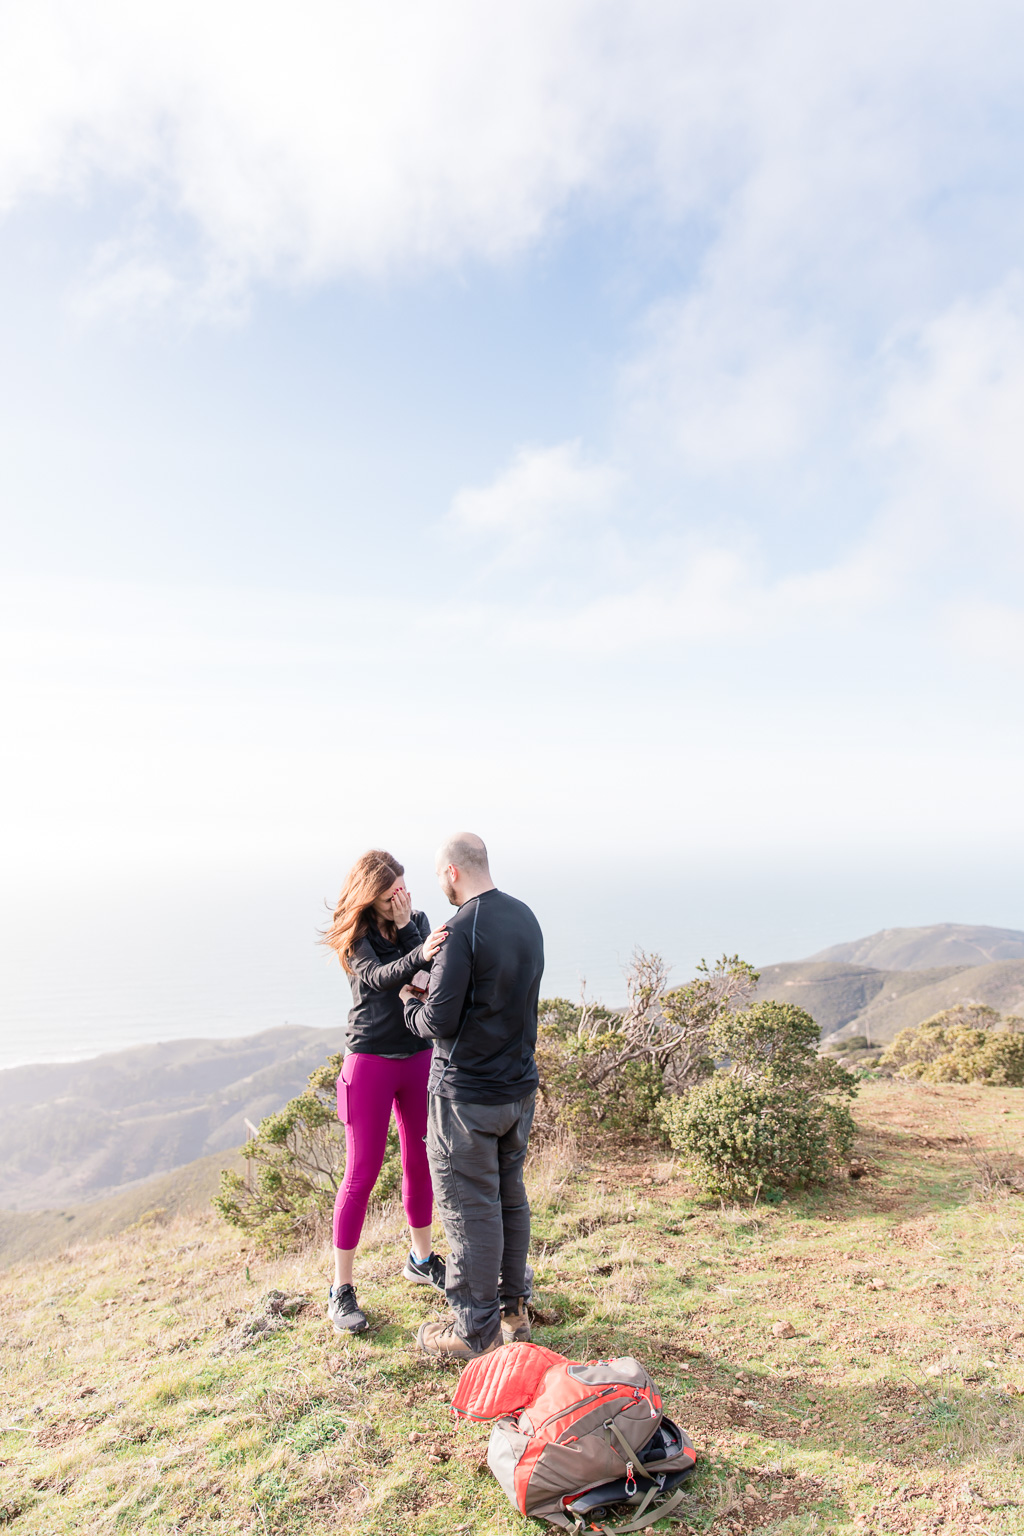 Surprise engagement captured by professional photographers on top of the mountains